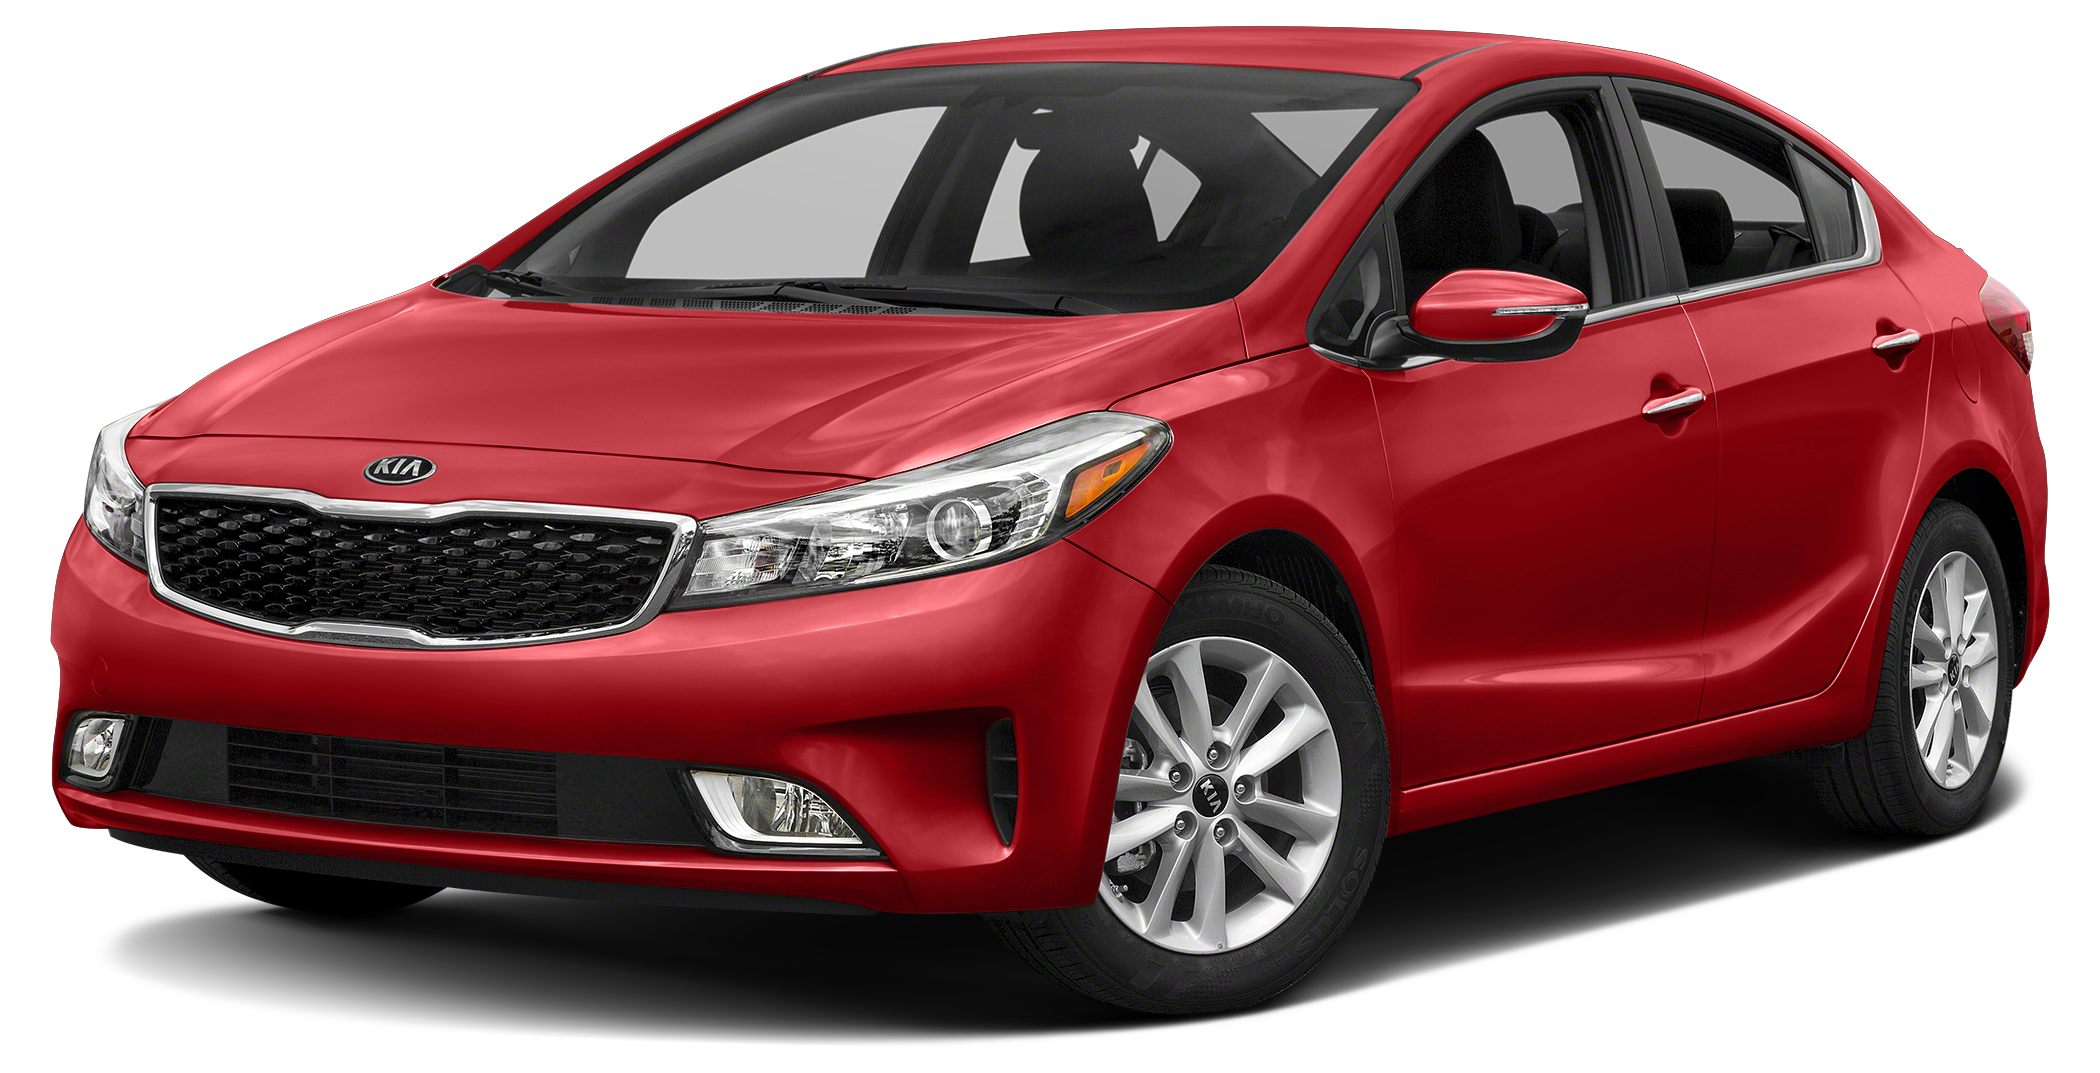 2018 Kia Forte S Miles 12Color Currant Red Stock SB18189 VIN 3KPFL4A74JE171251